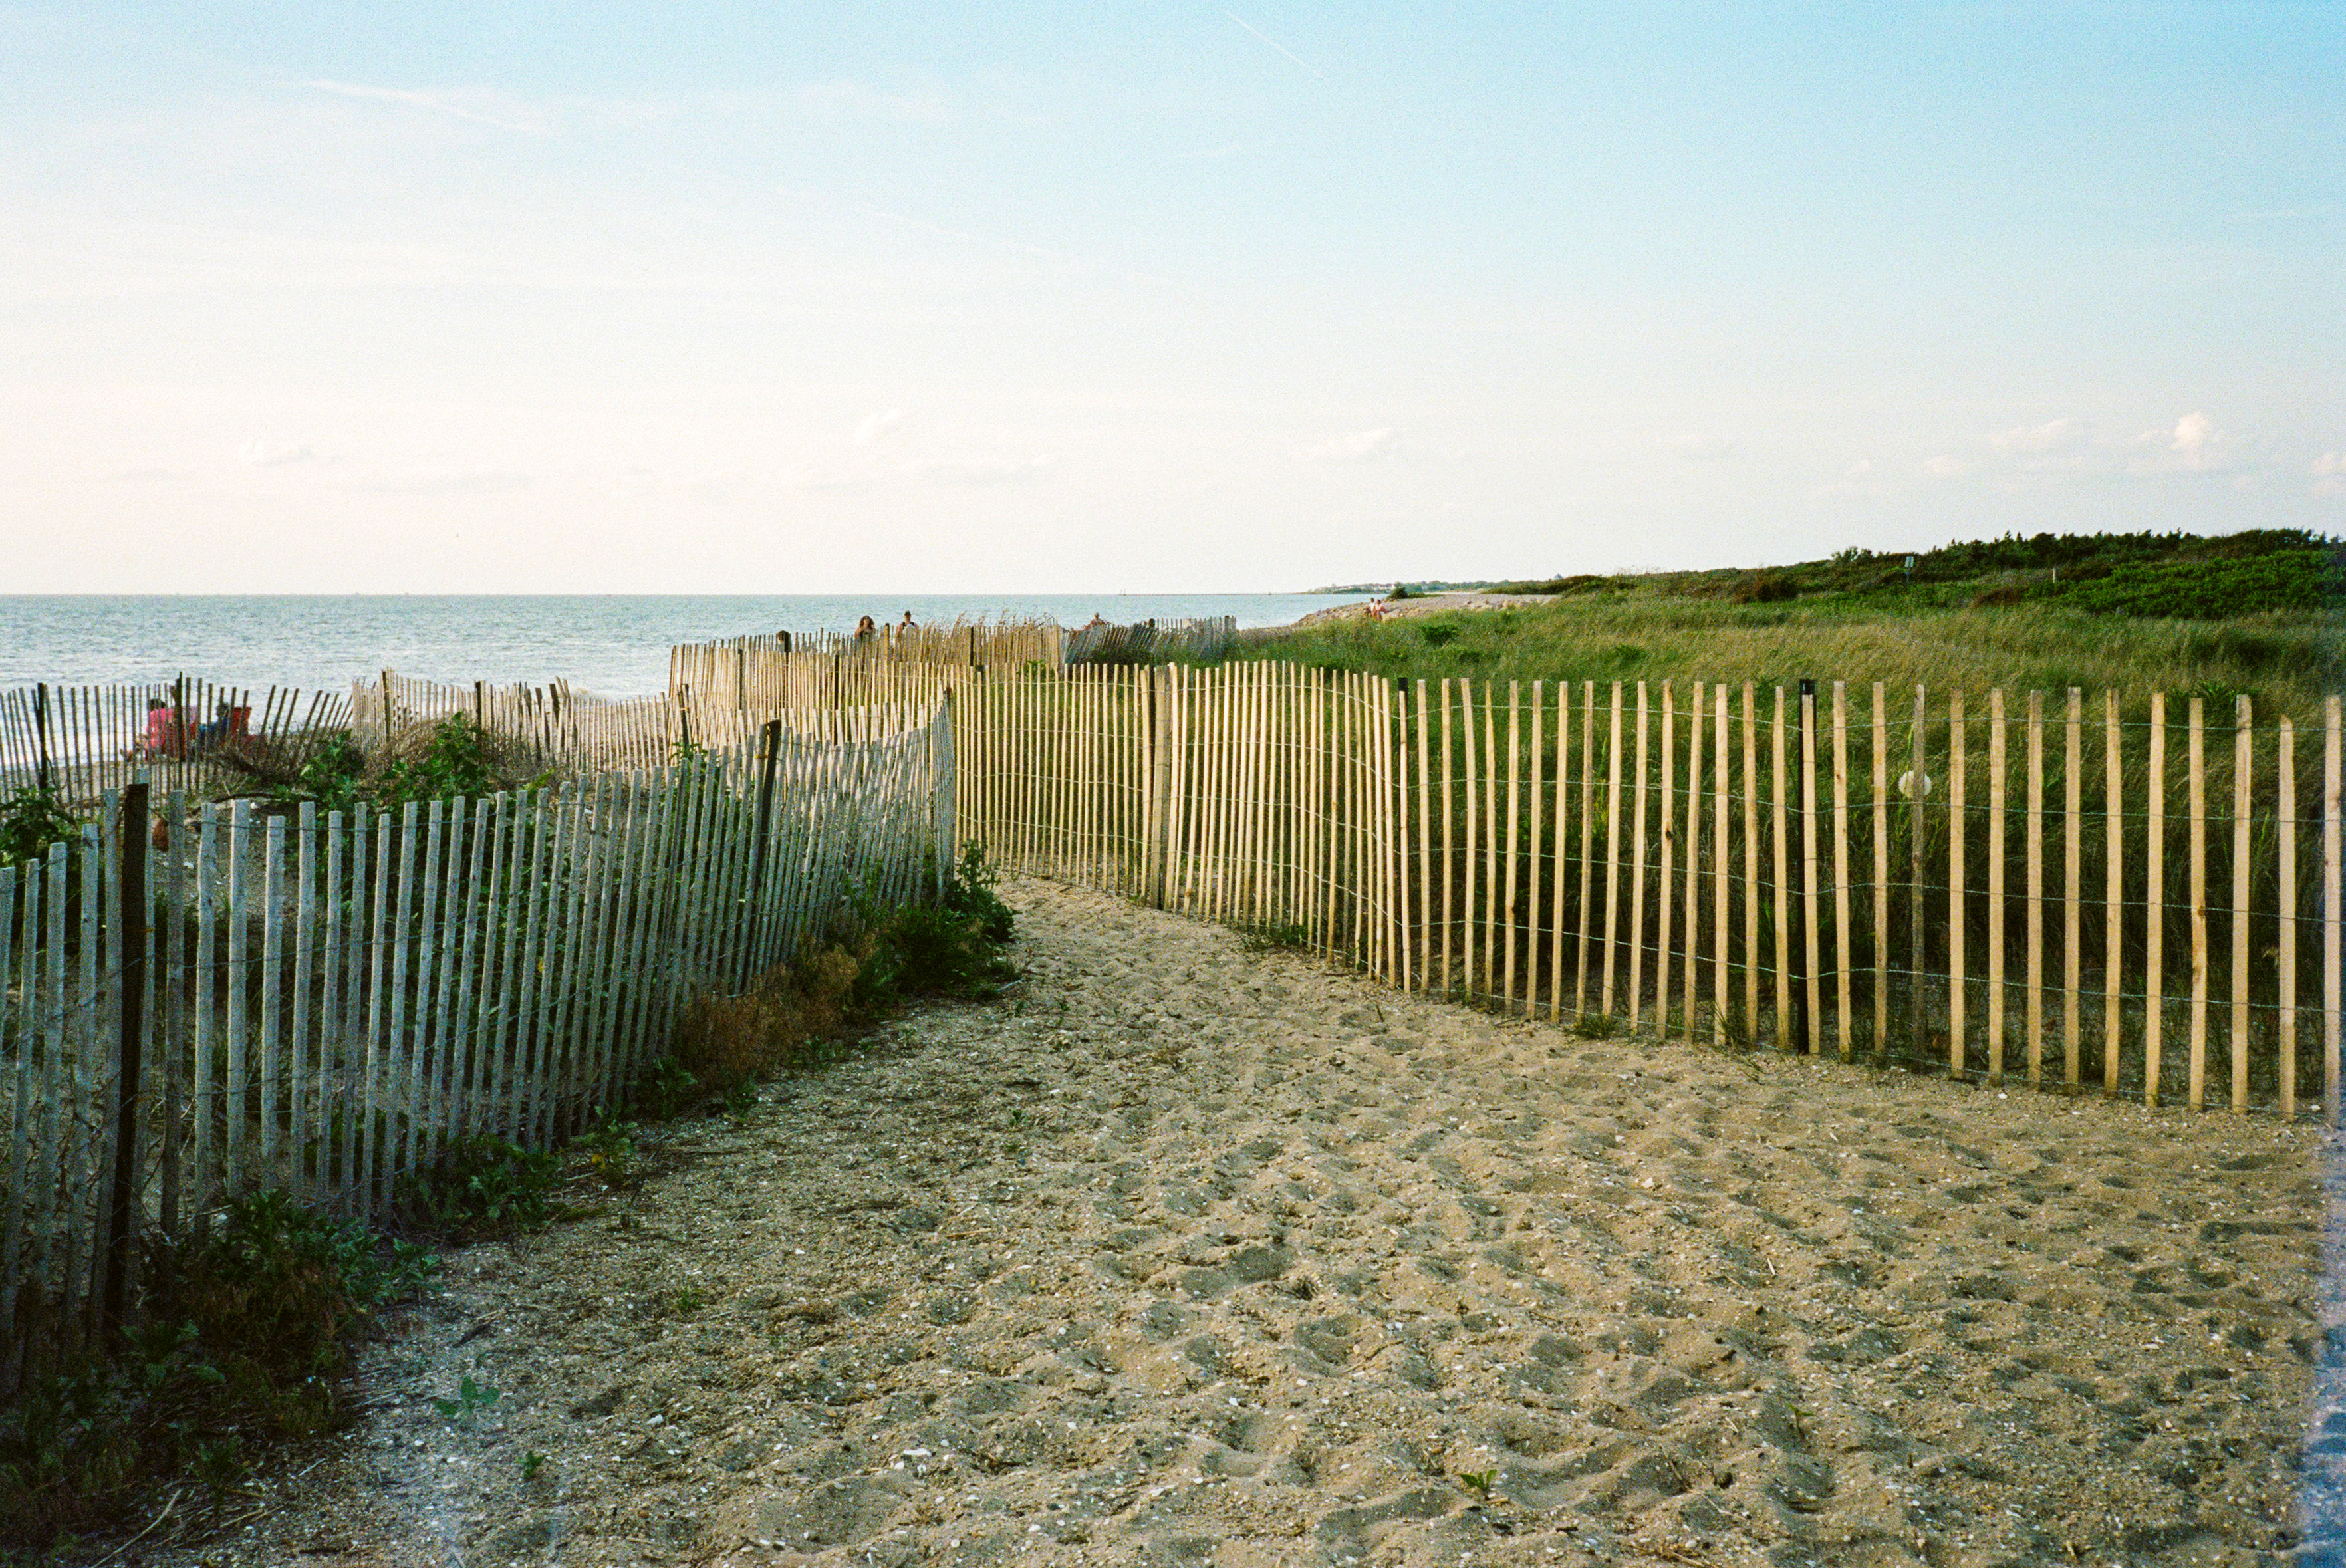 5 towns to visit on the Jersey Shore